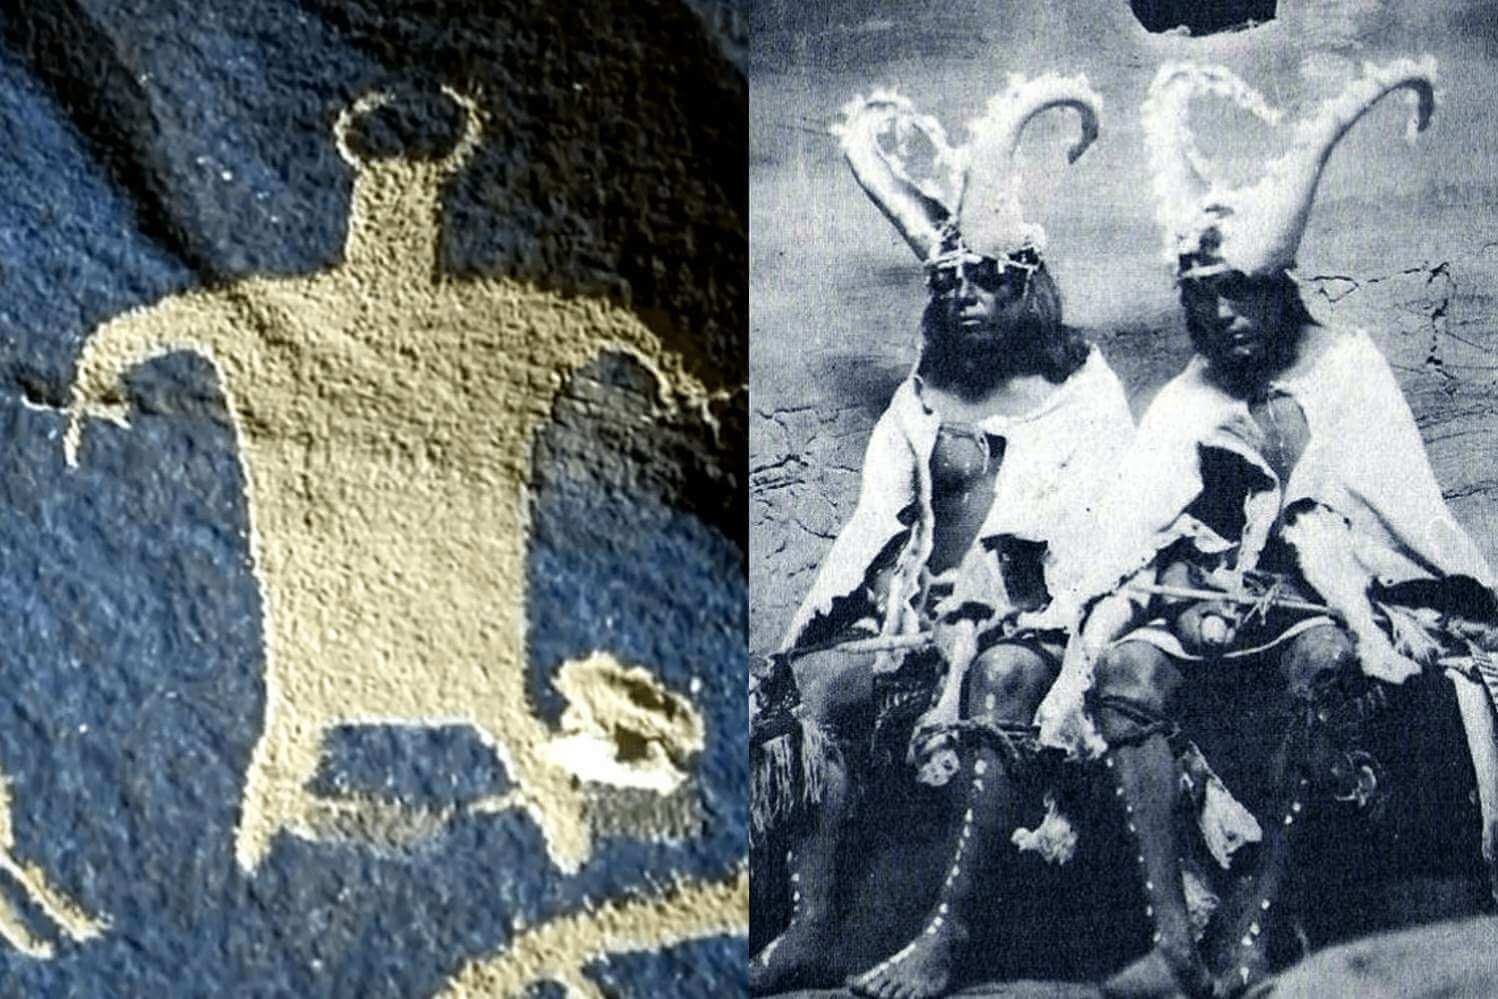 The Ant people of Hopi